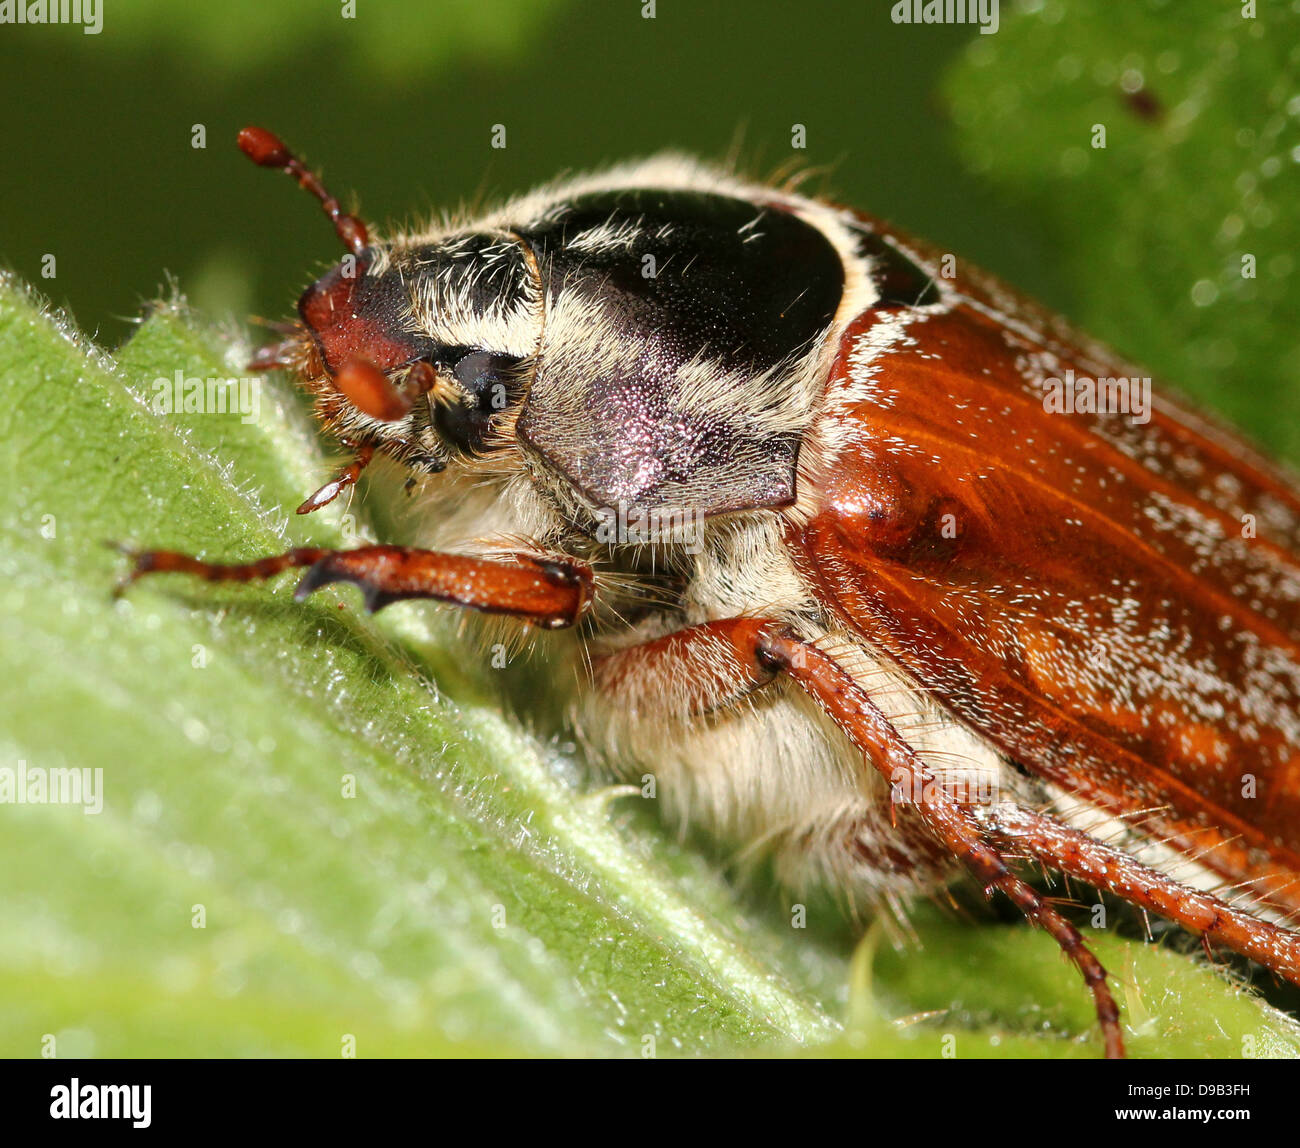 Close-up of  the head and feathered antennae of a male Cockchafer a.k.a. May Bug (Melolontha melolontha) Stock Photo